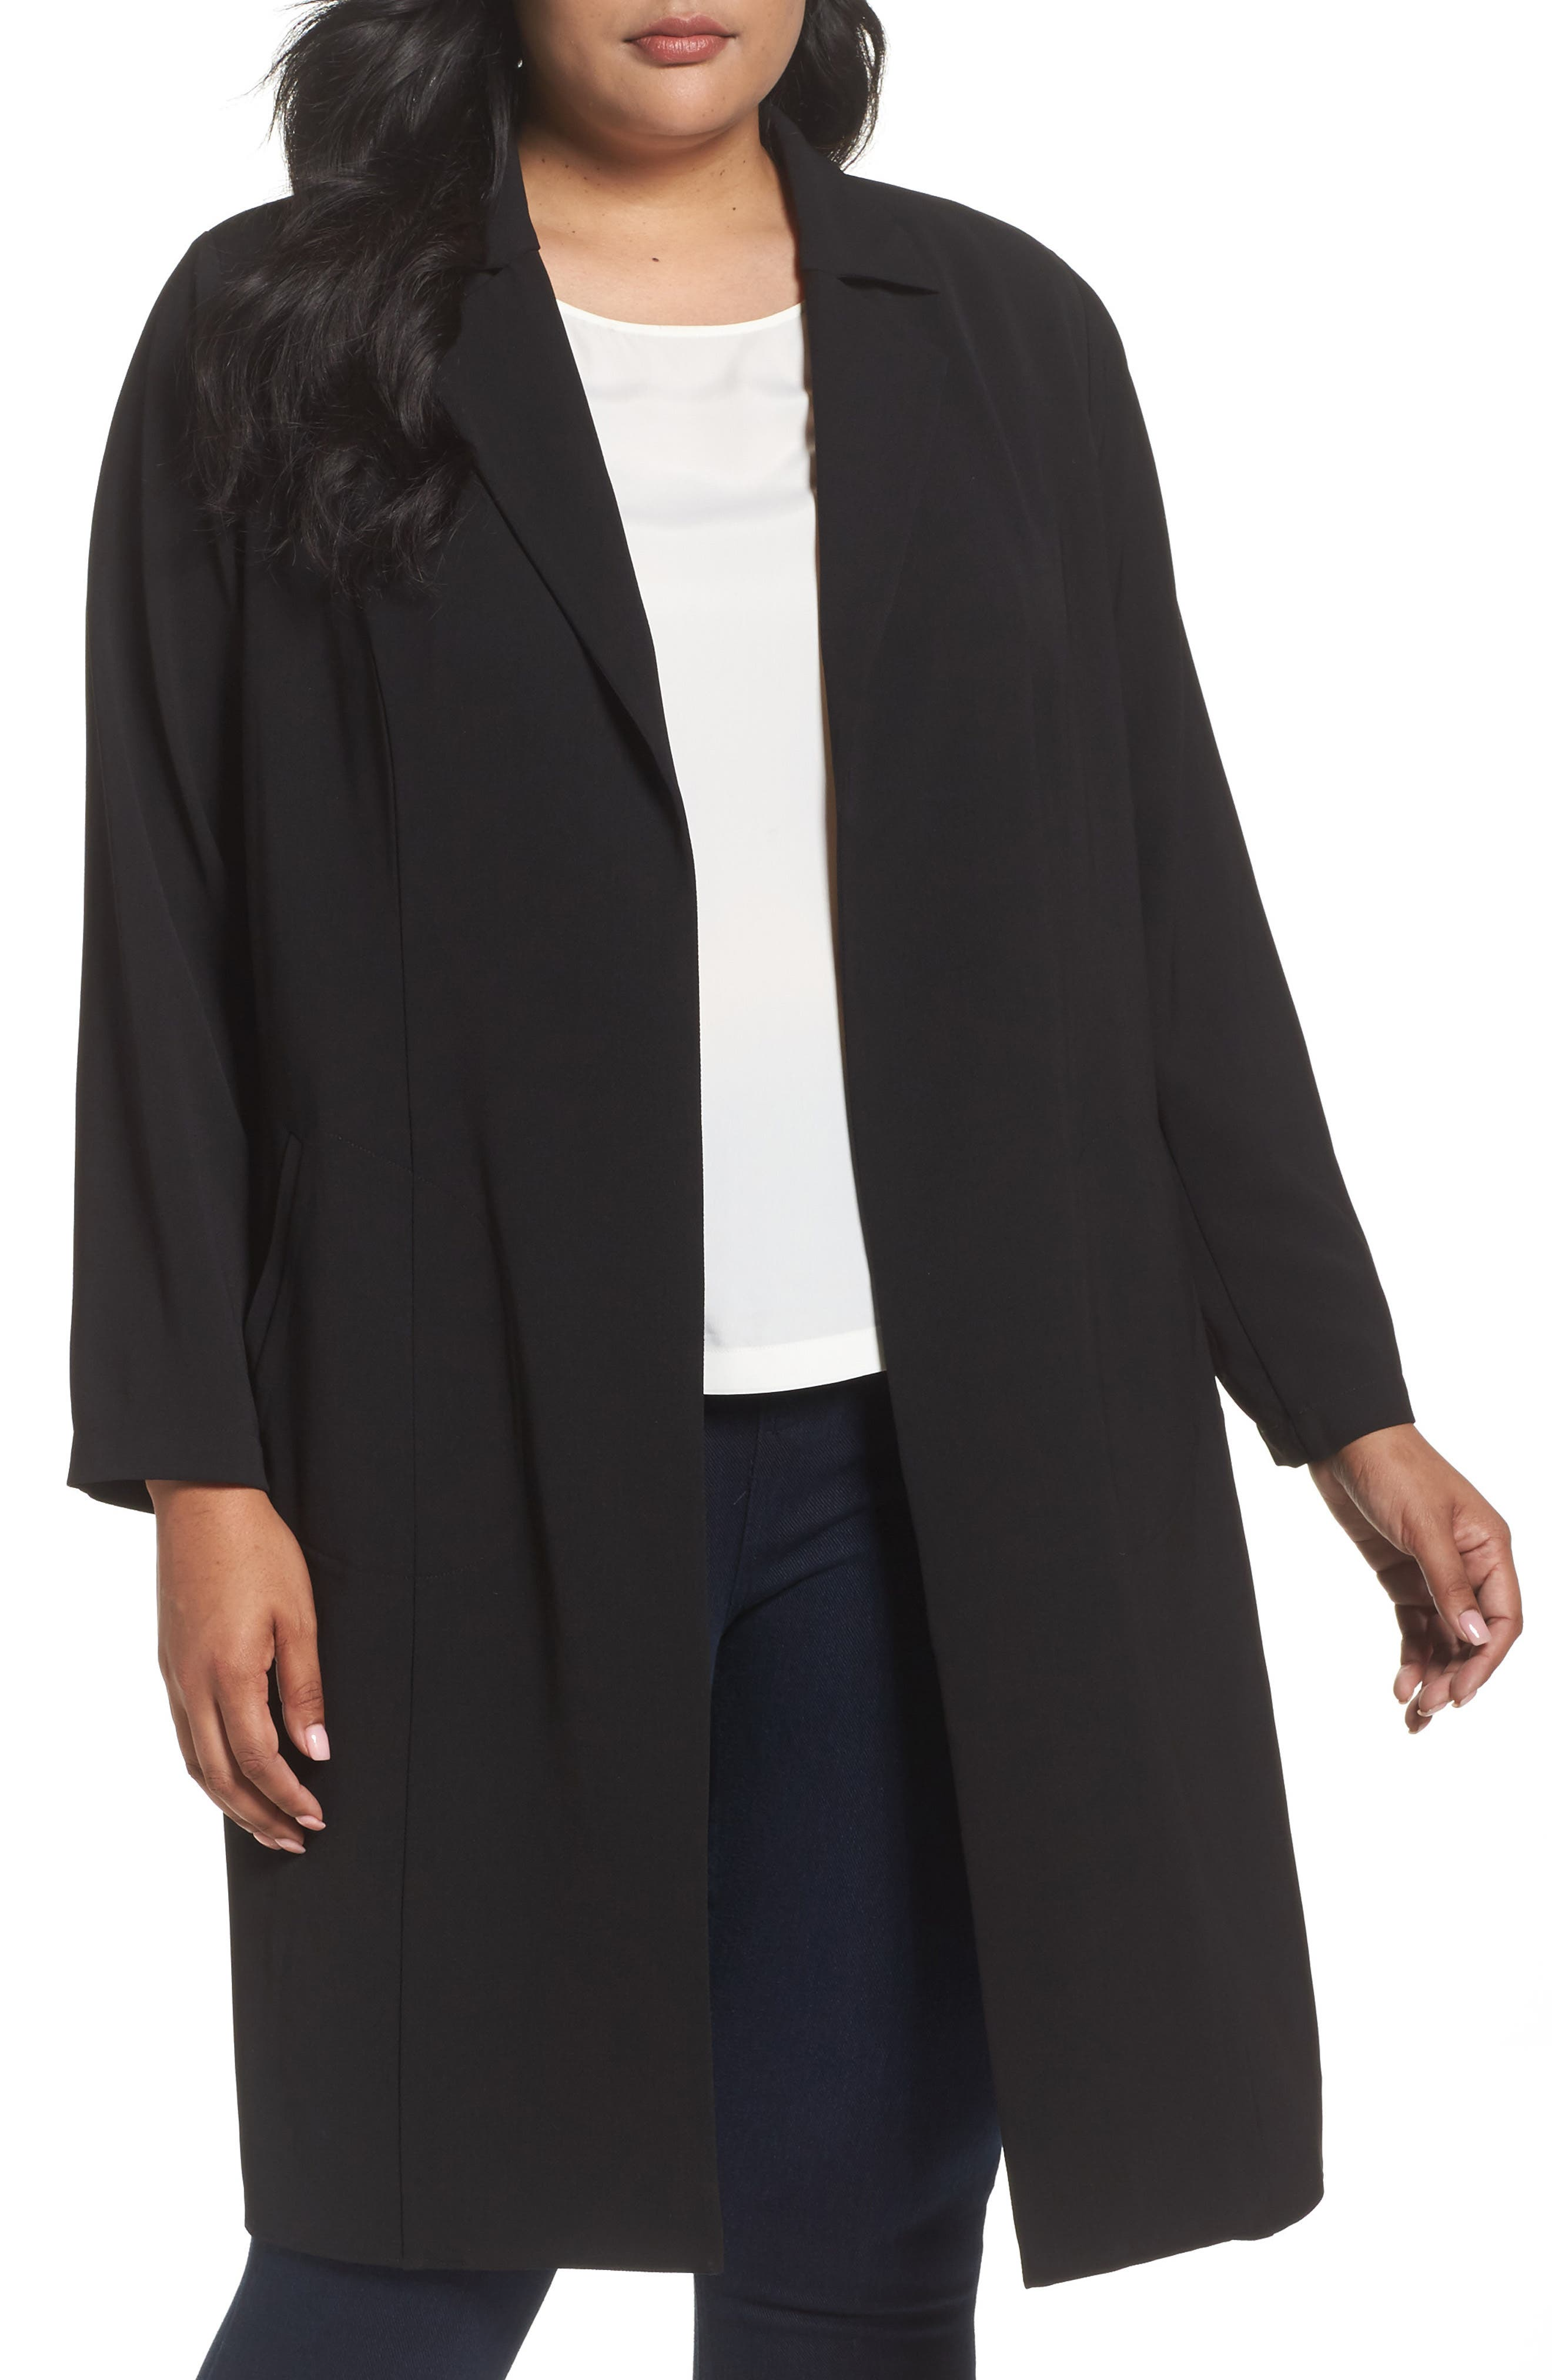 Alternate Image 1 Selected - Vince Camuto Long Jacket (Plus Size)